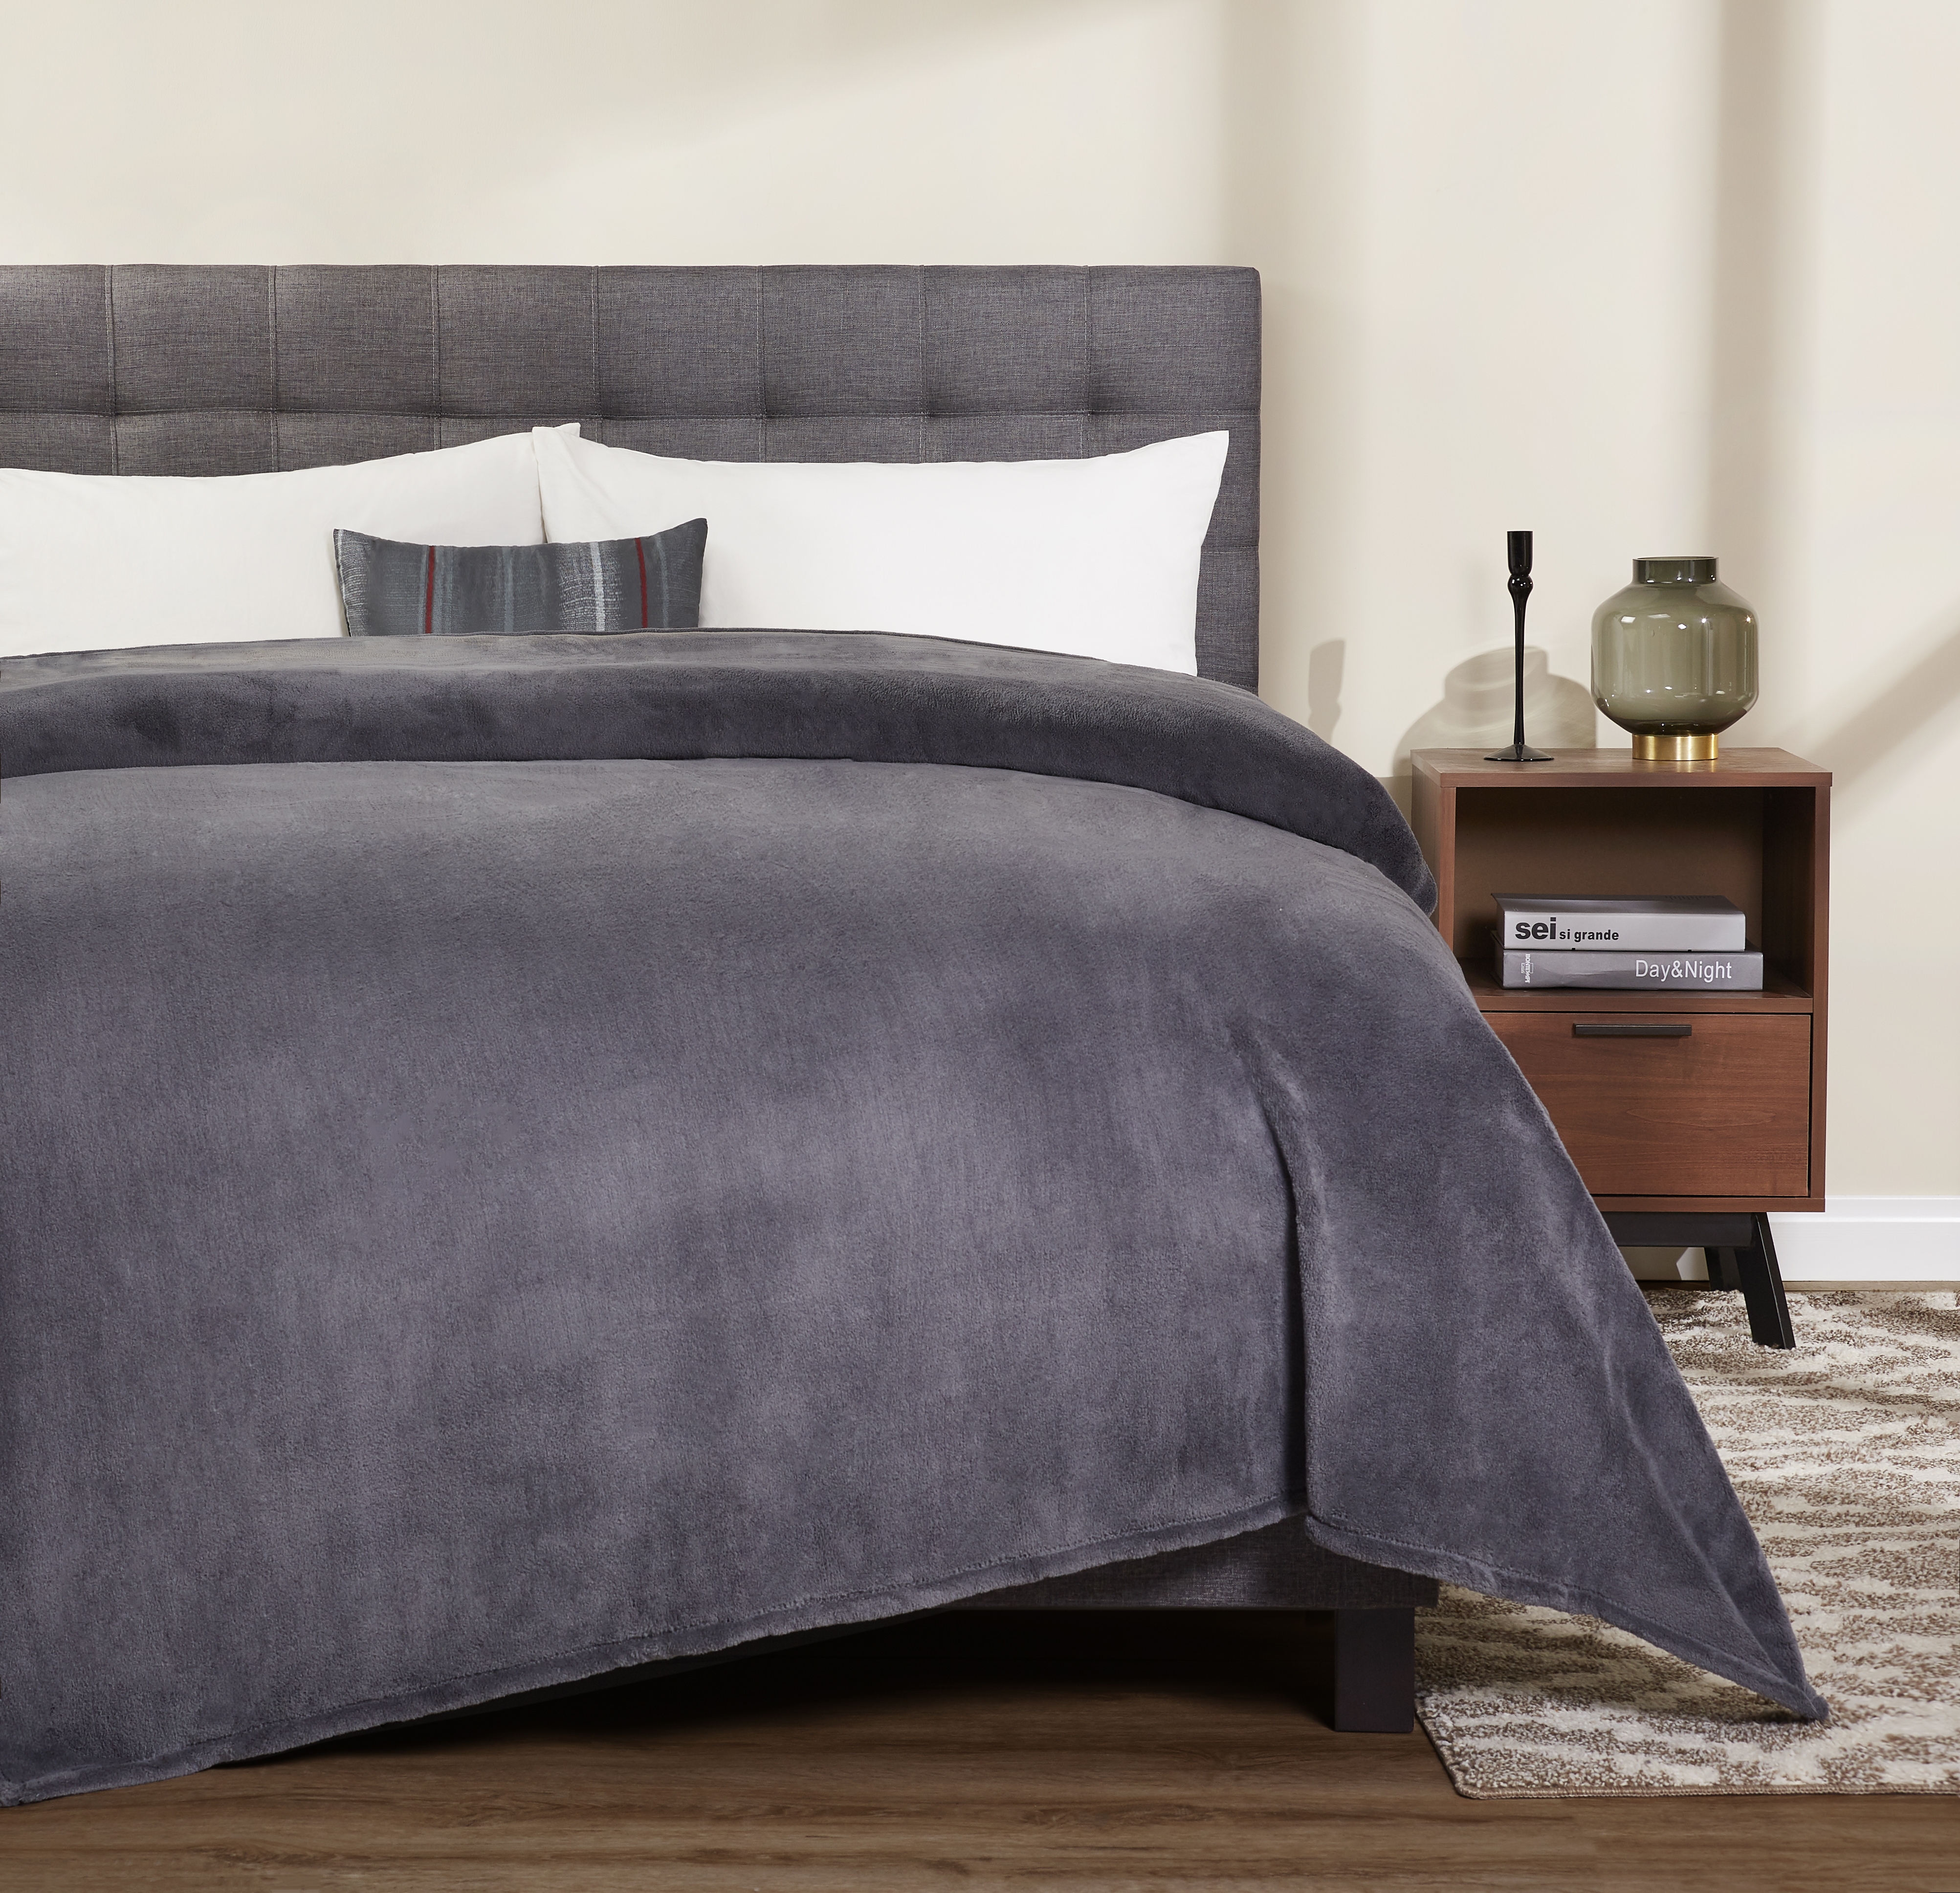 Mainstays Plush Bed Blanket, Multiple Sizes & Colors